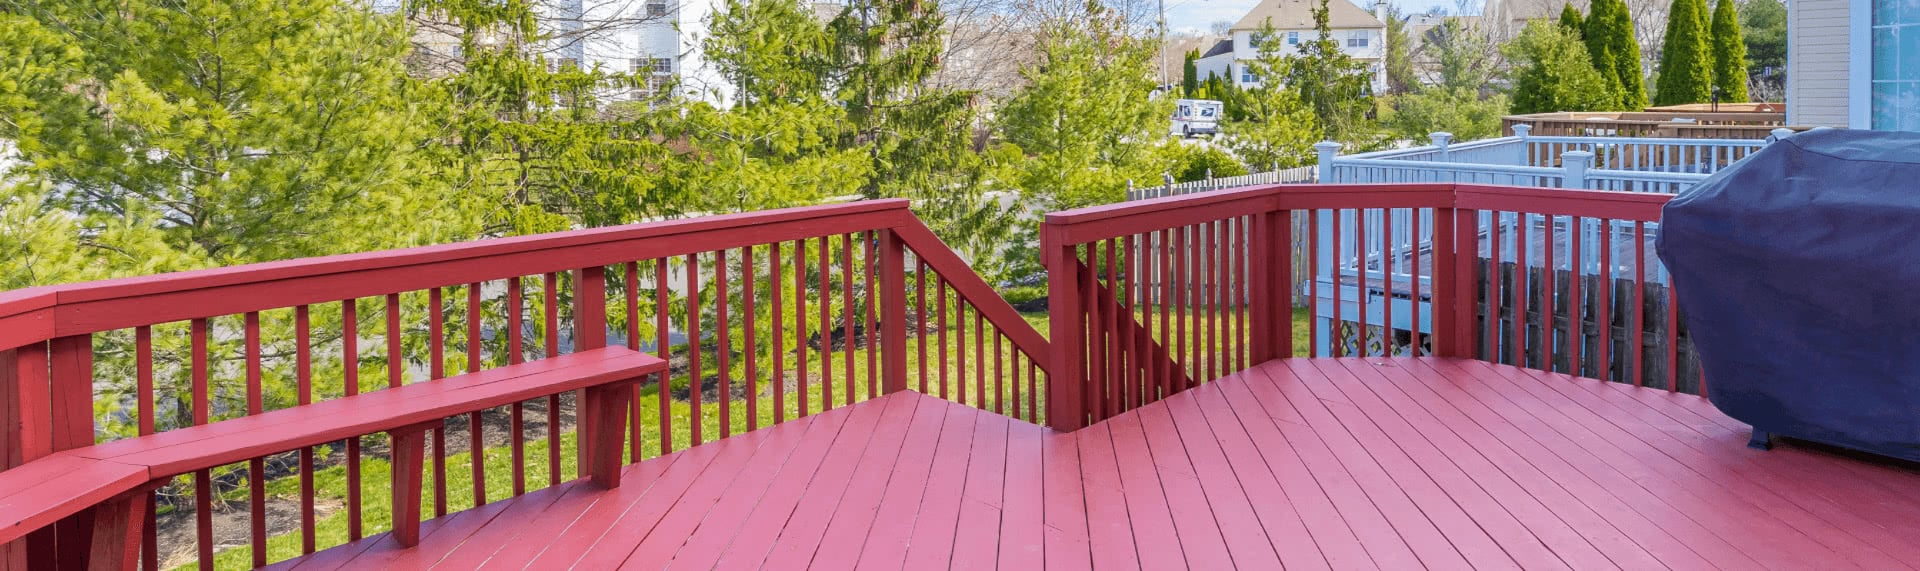 break-out-the-deck-cleaner-and-stain